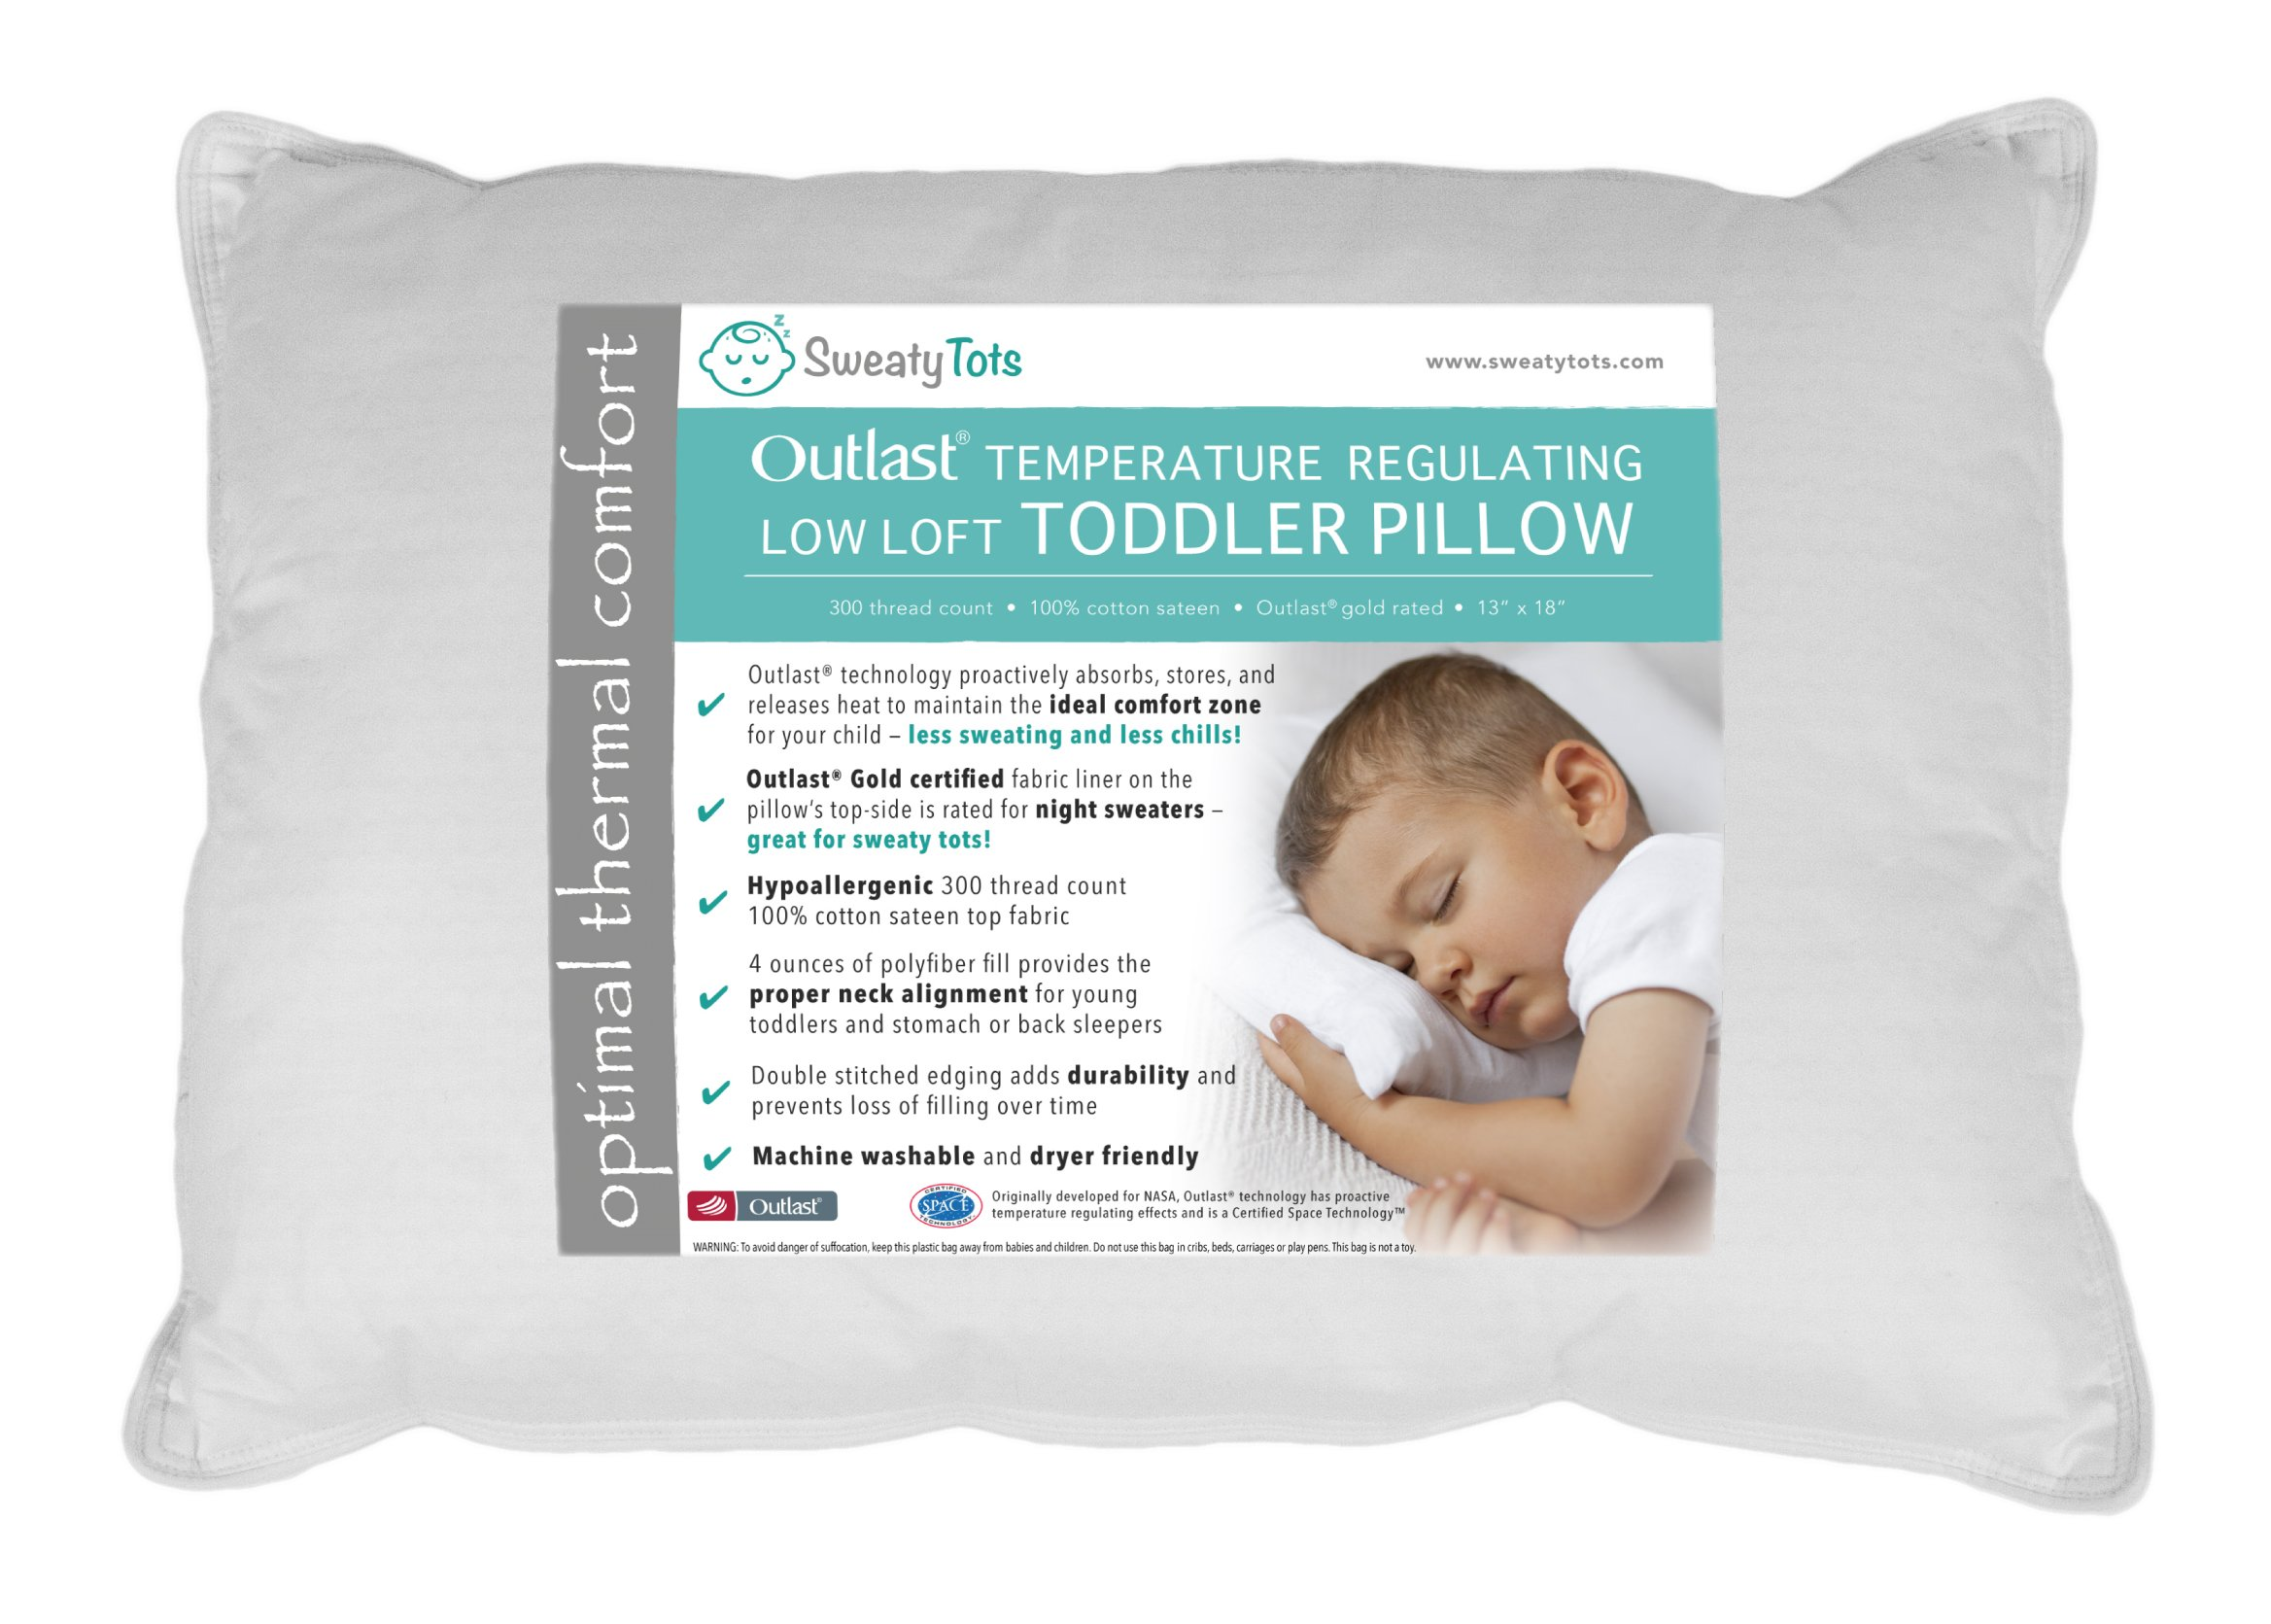 Toddler Pillow for Hot or Sweaty Sleepers - 13 x 18, White, 300TC Cotton